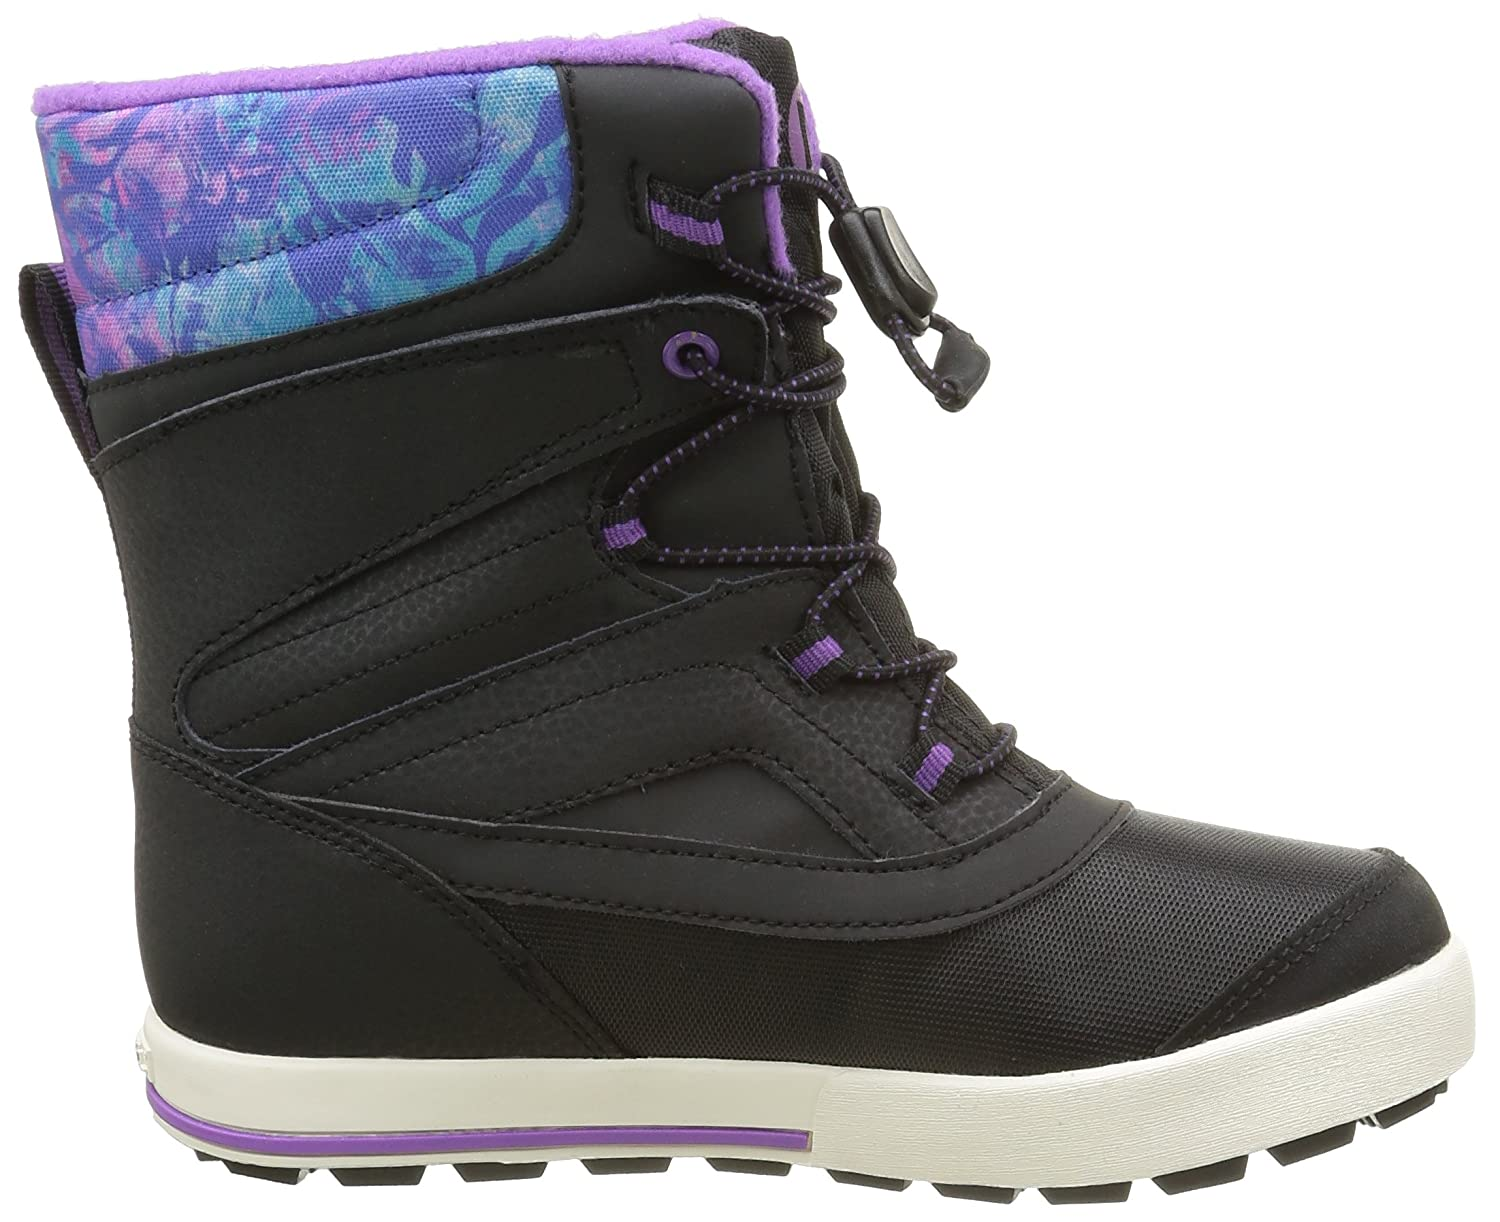 Merrell ML-Girls Snow Bank 2.0 WTRPF, Chaussures de Randonnée Hautes Fille, Violet (Black/Print/Berry), 3 UK